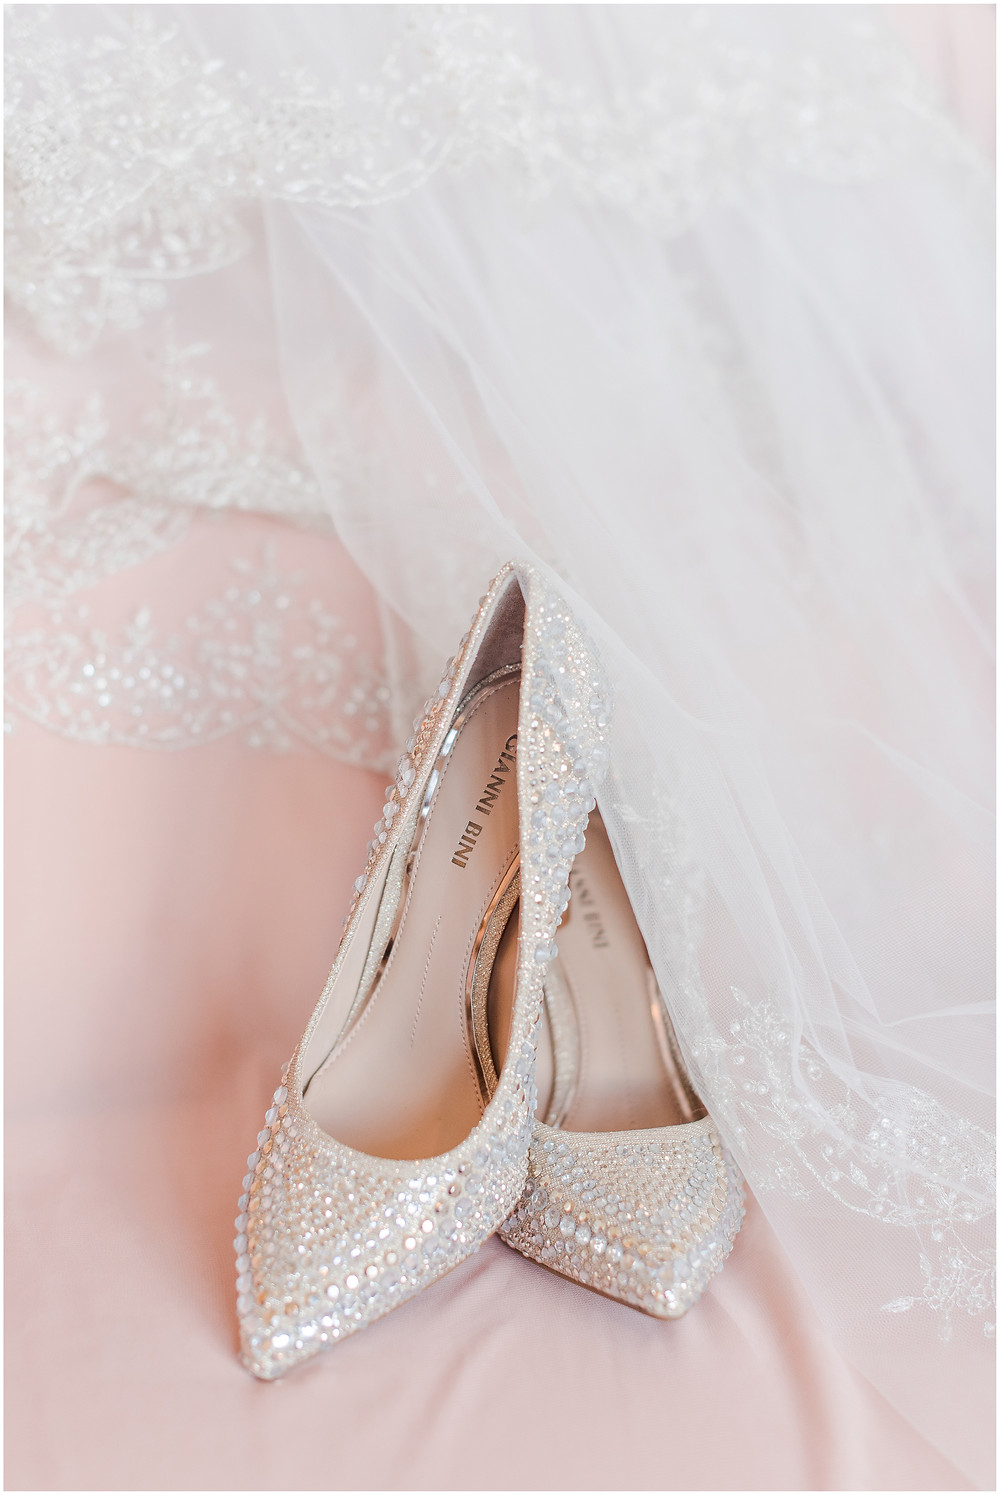 Stunning jeweled wedding shoes. Silver and Gold wedding shoes. Sparkly wedding shoes by Gianni Bini